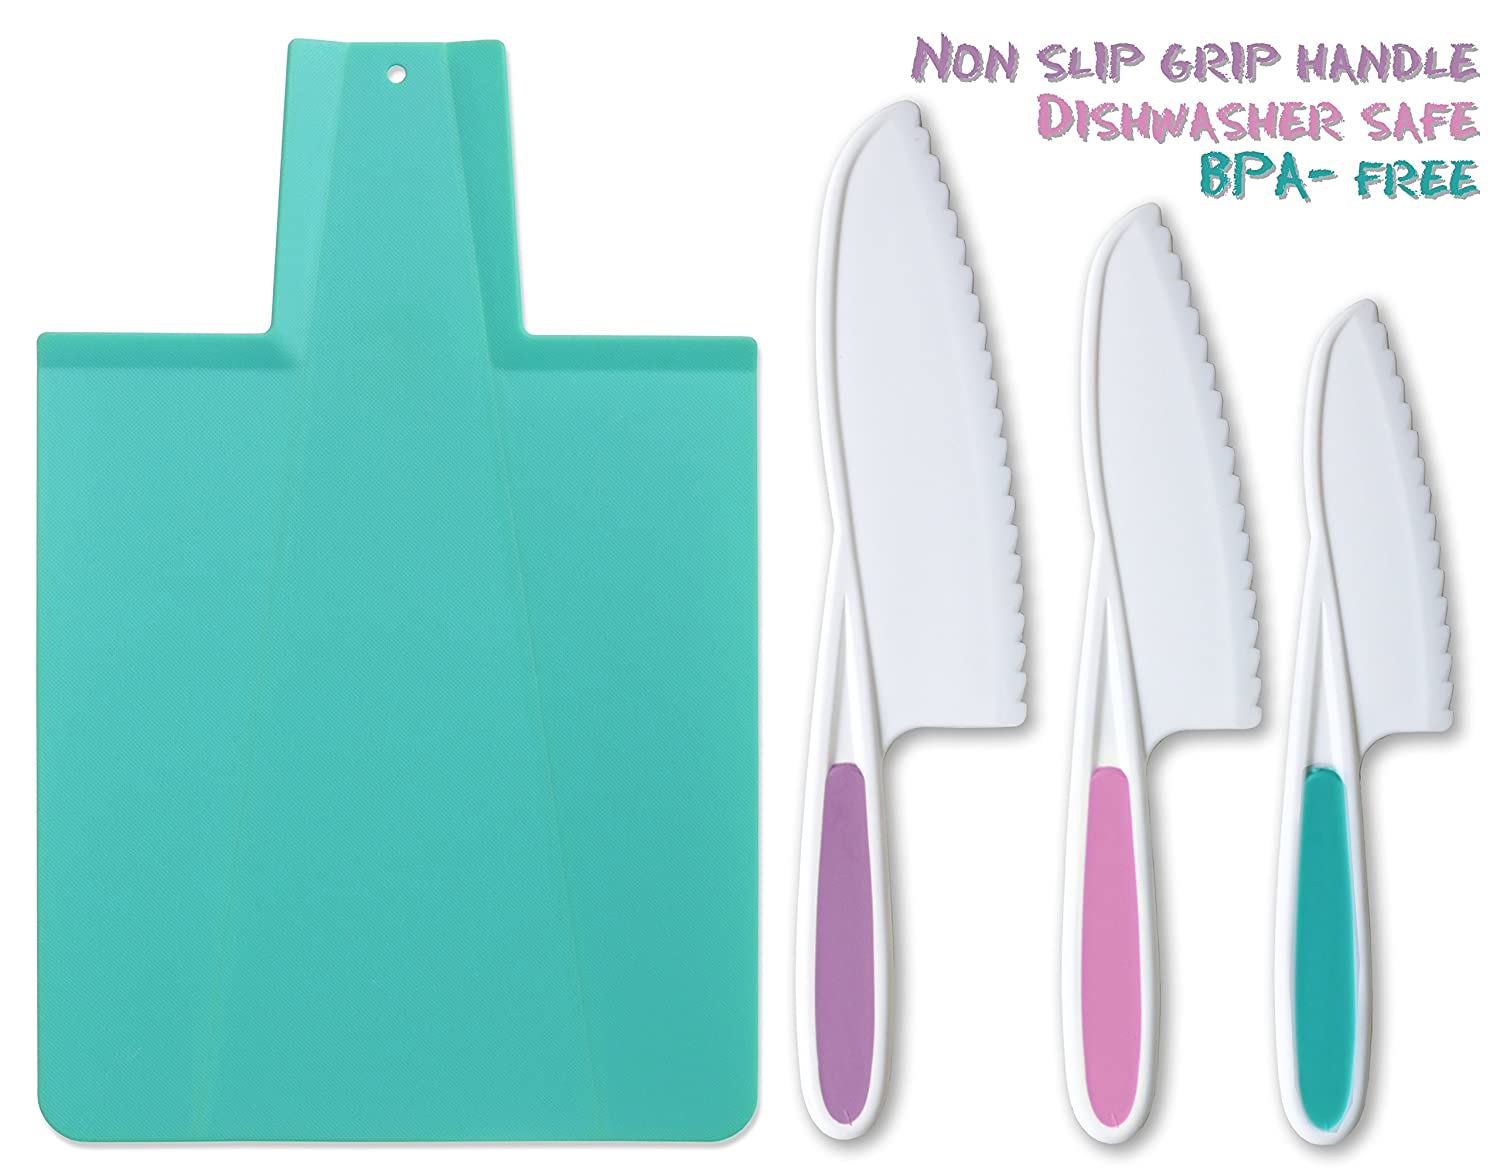 Tovla & Co. Kids Kitchen Knife and Foldable Cutting Board Set: Children's Cooking Knives in 3 Sizes & Colors/Firm Grip, Serrated Edges, BPA-Free Kids' Knives/Safe Lettuce and Salad Knives